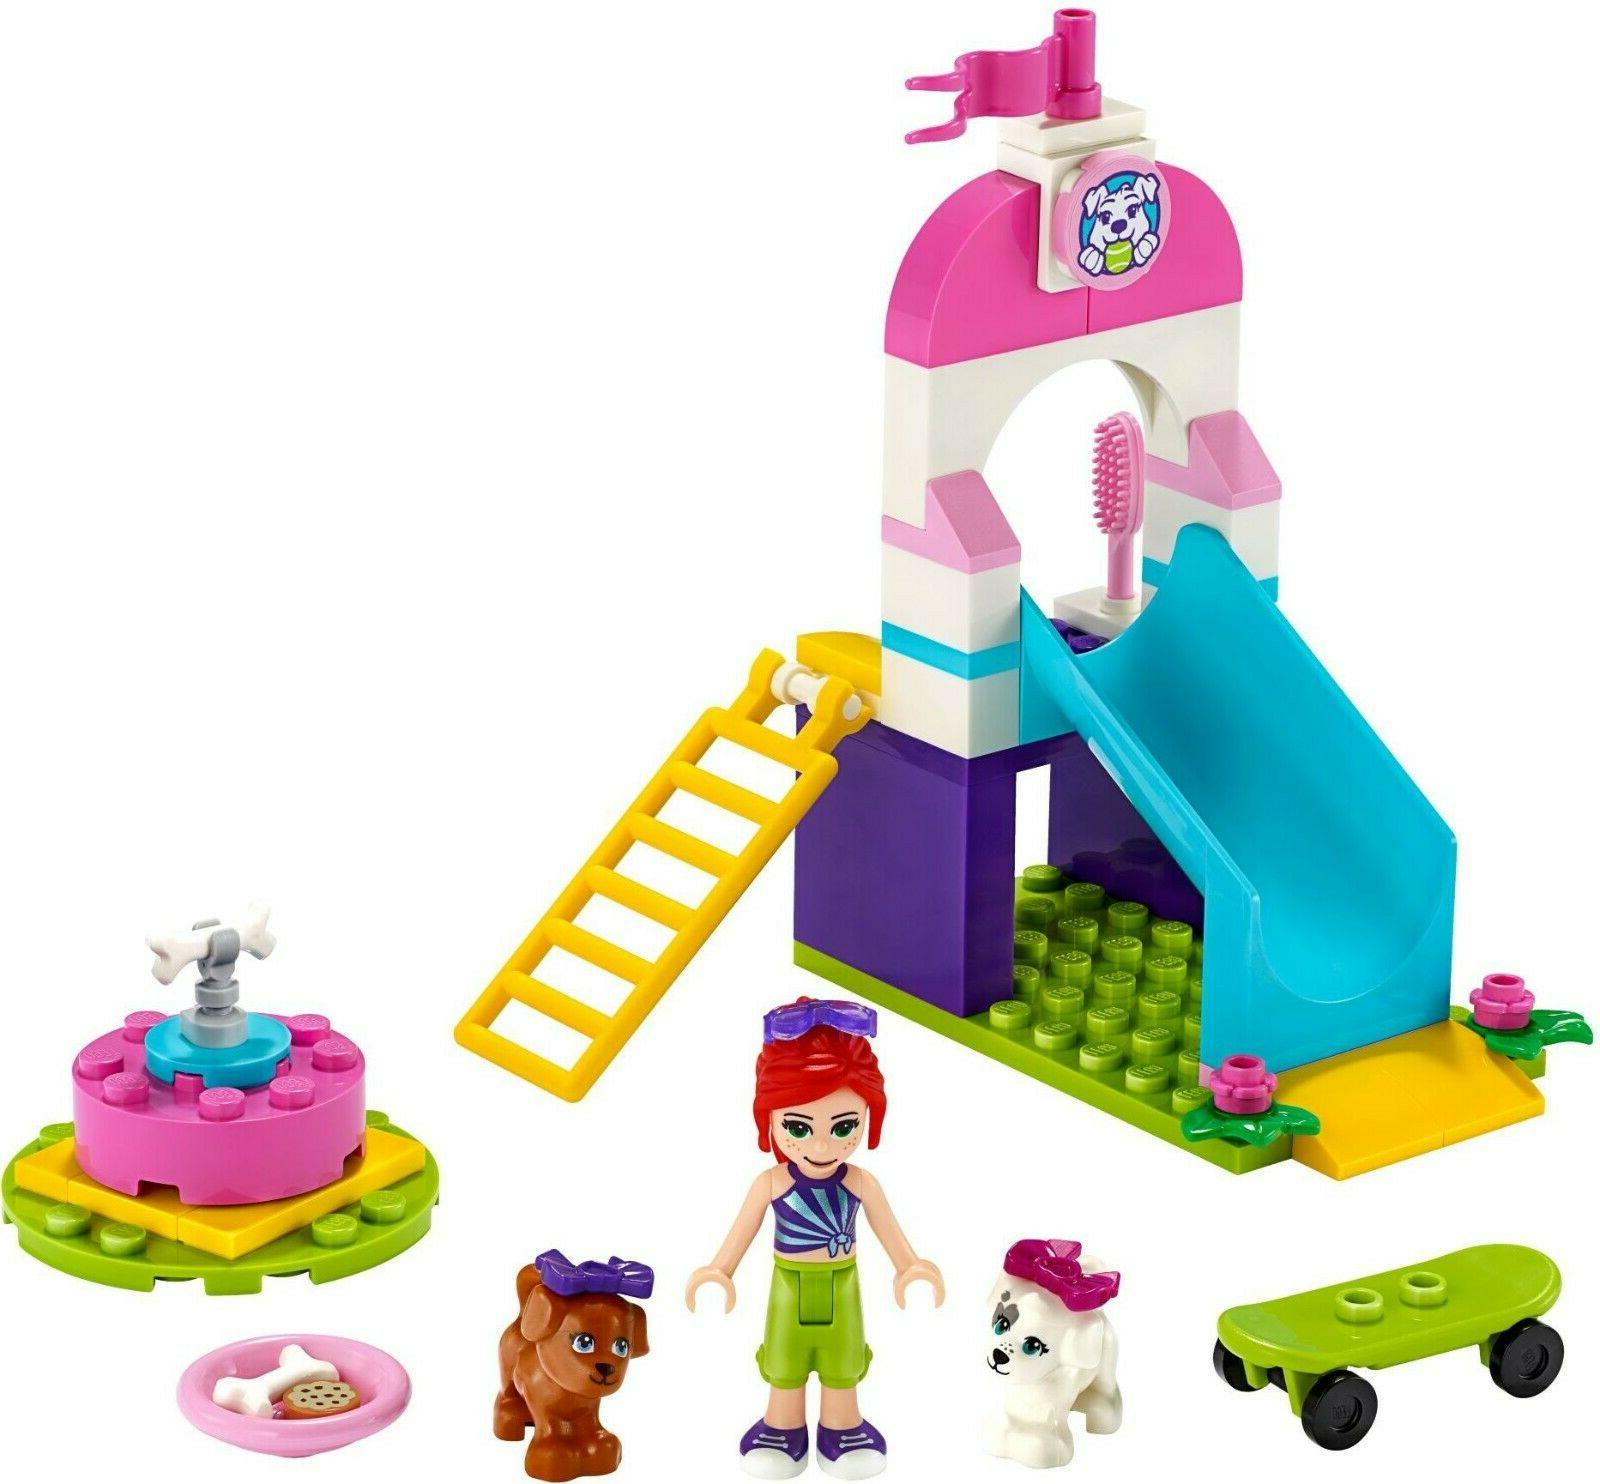 Lego 41396 Puppy Playground Adventures New Building Play